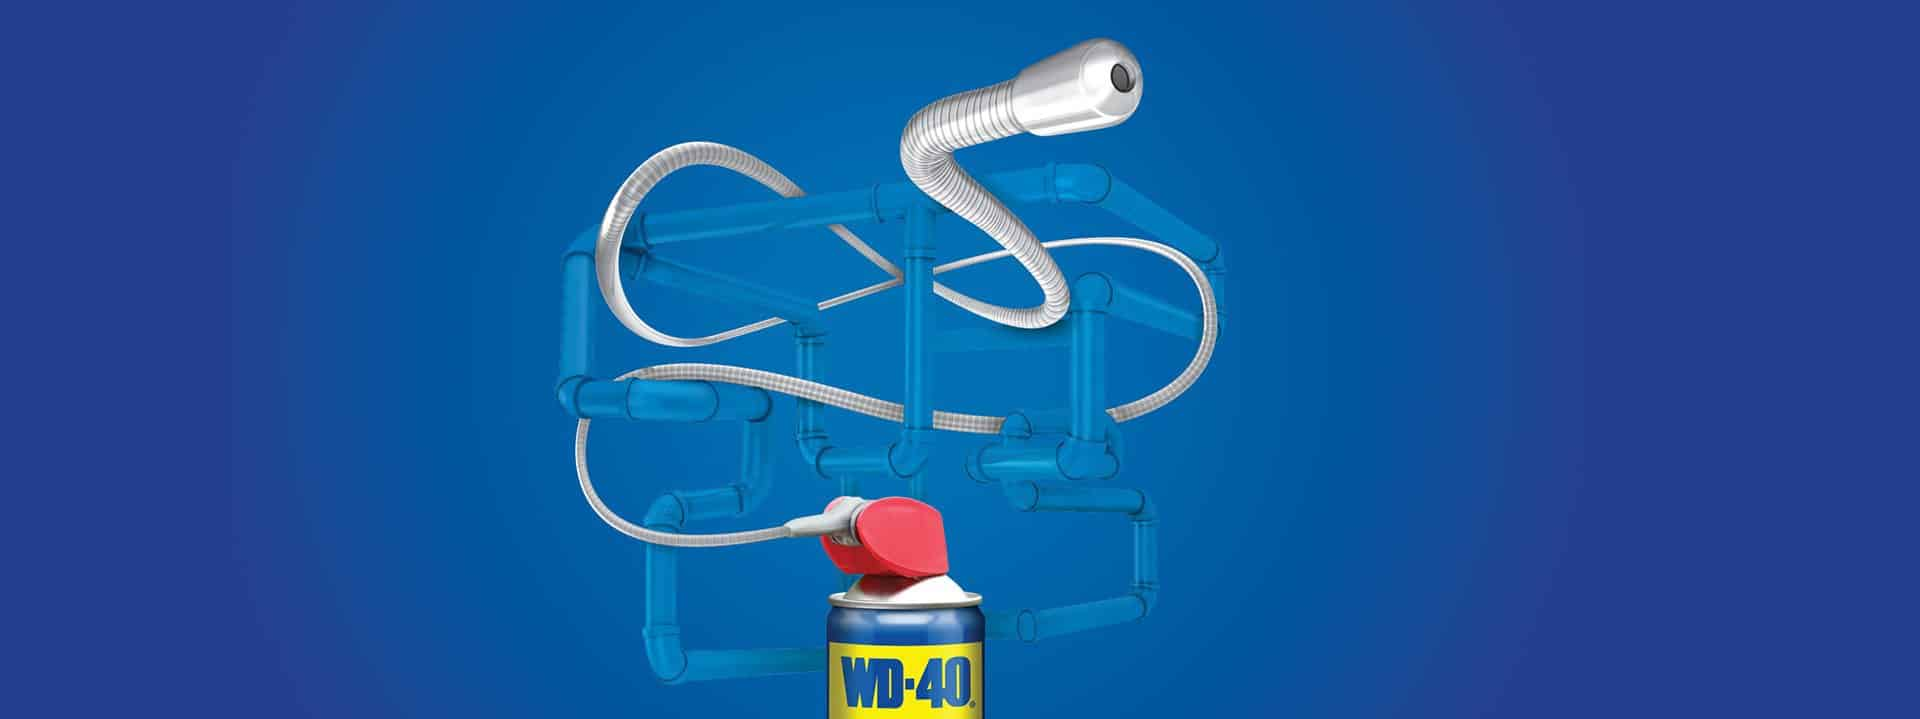 banner wd-40 flexible1920 720